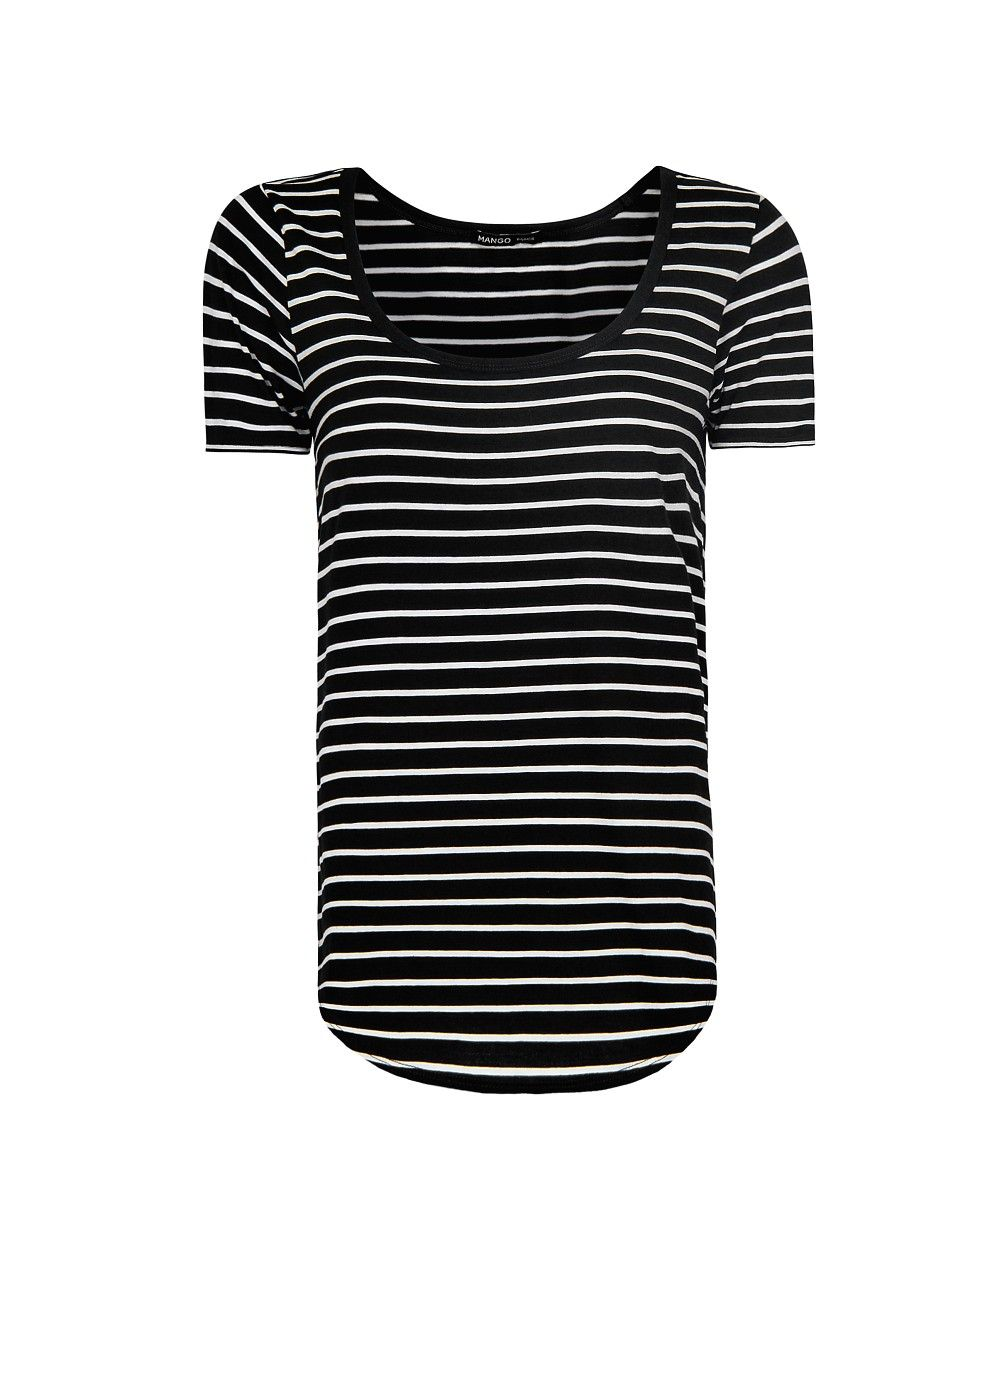 Mango navy striped tee